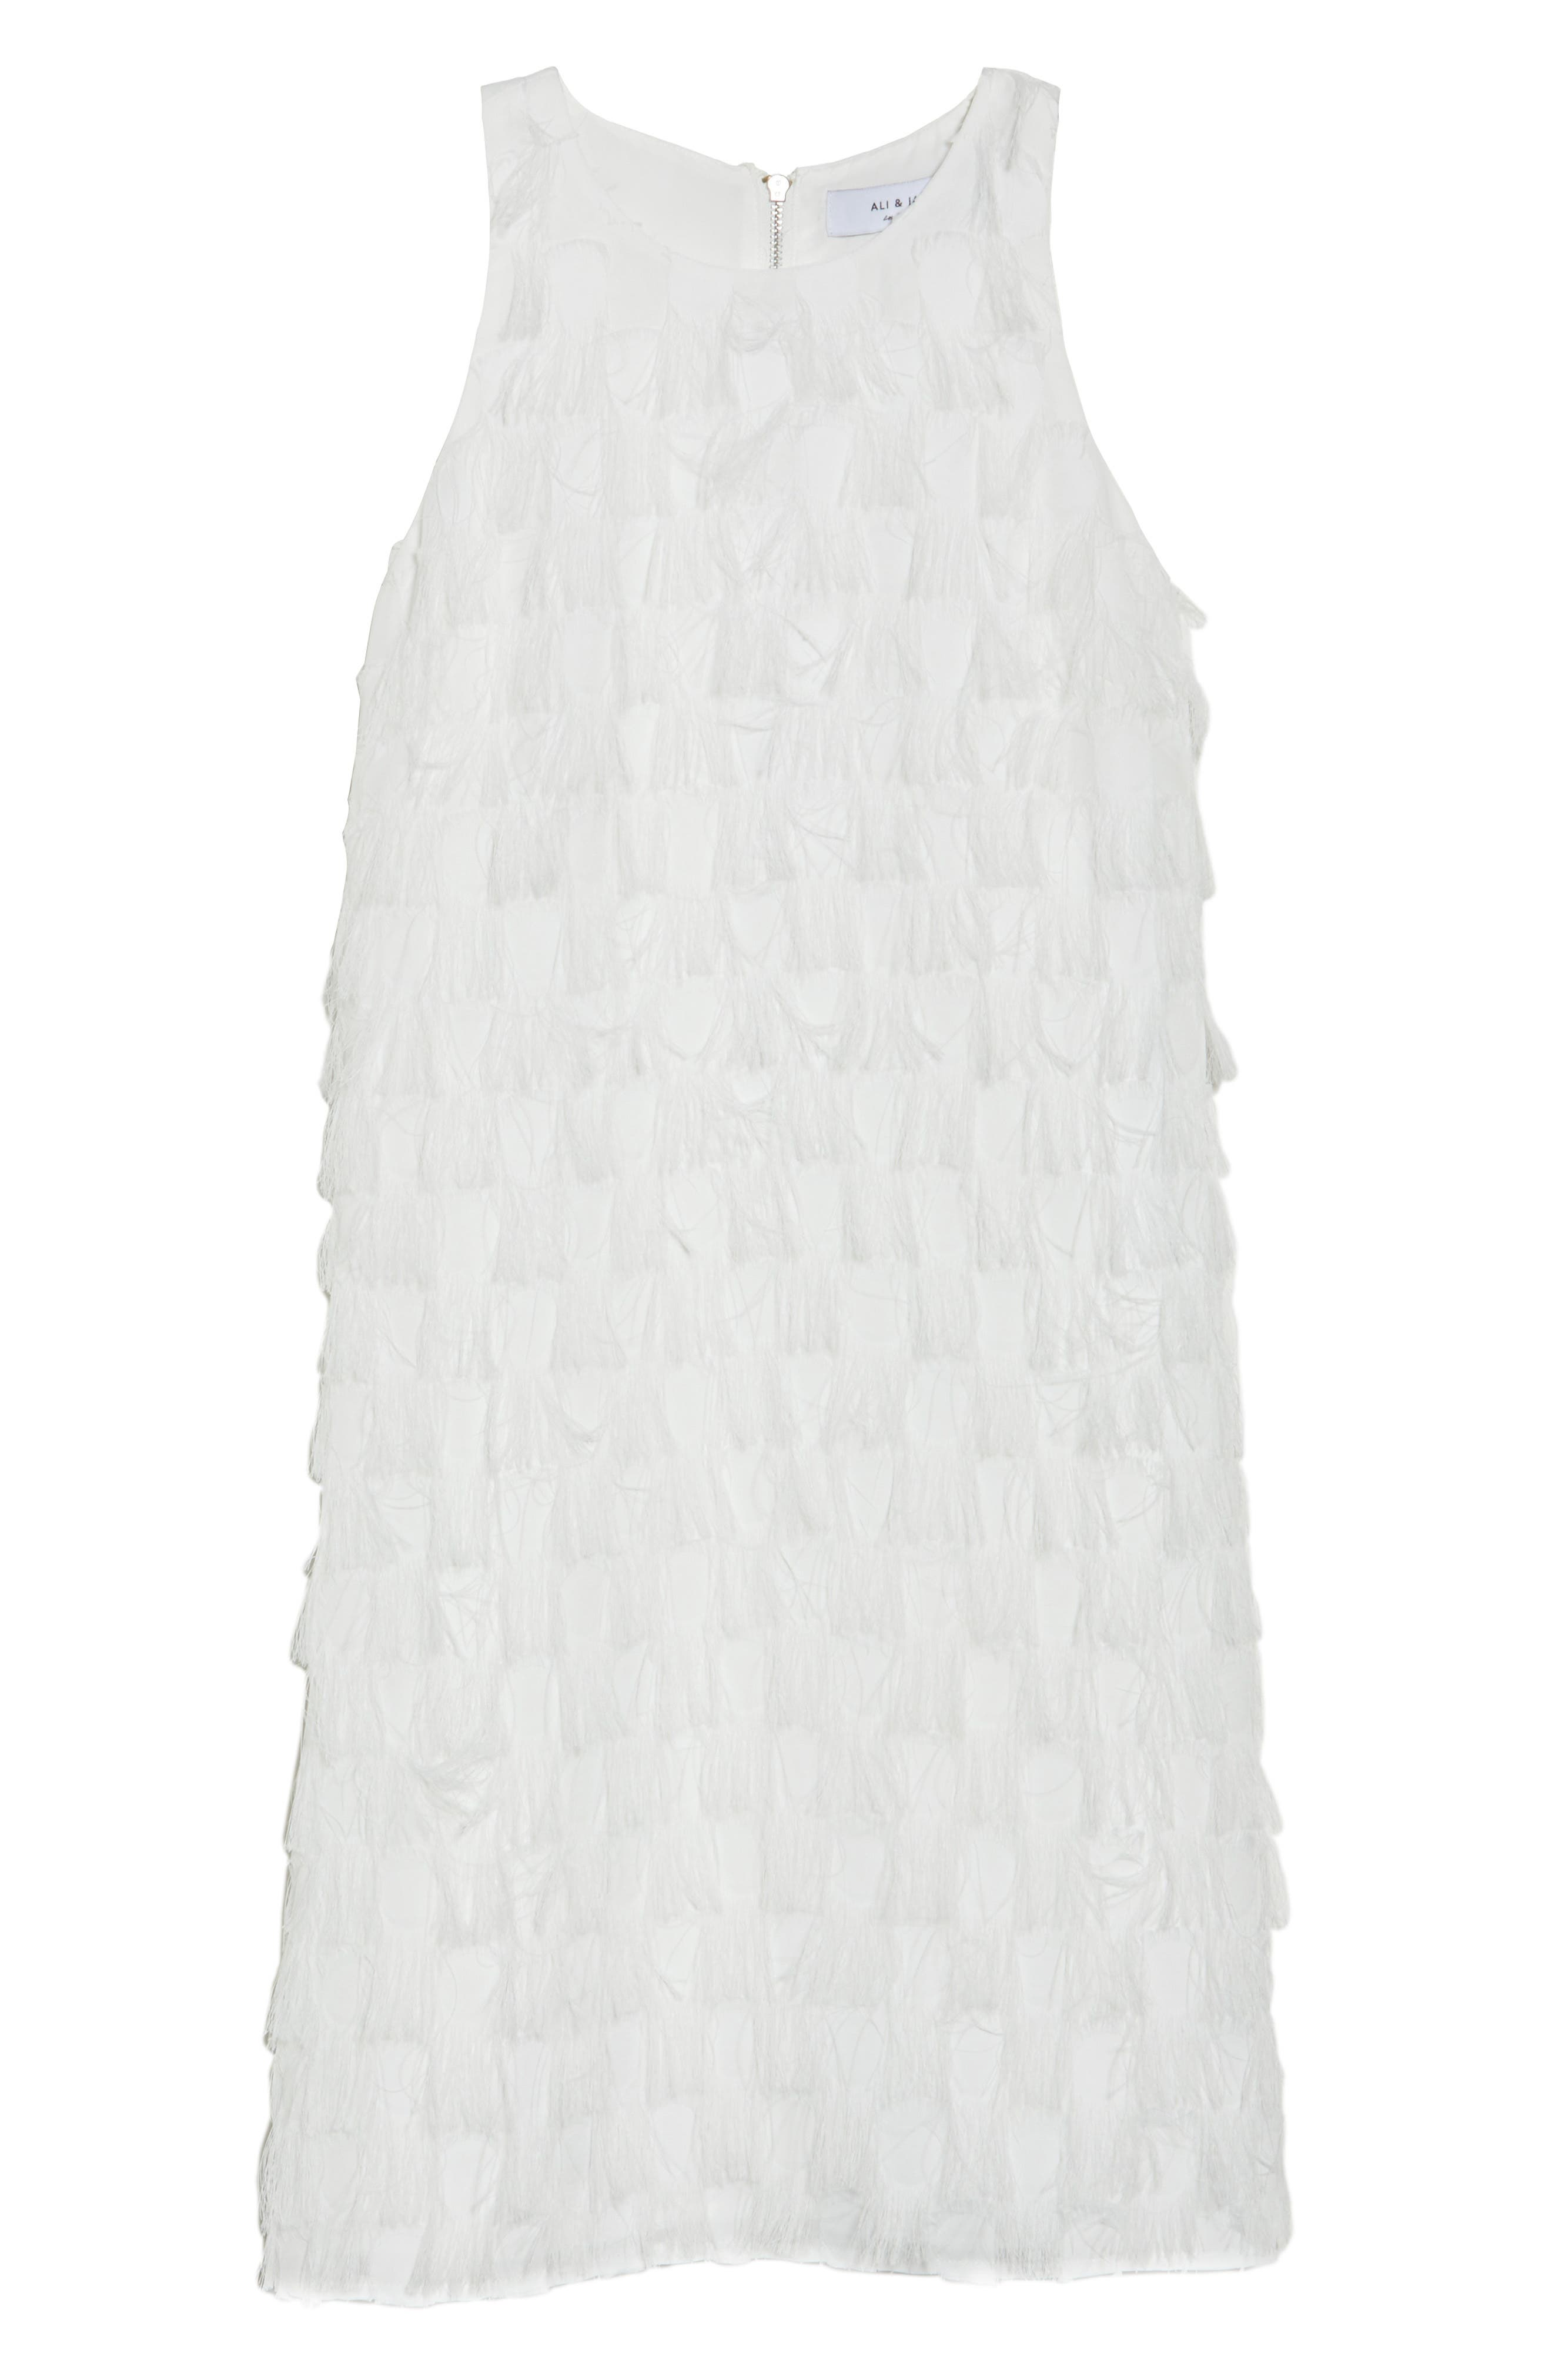 Shake Your Tail Feathers Minidress,                             Alternate thumbnail 7, color,                             White Fringe